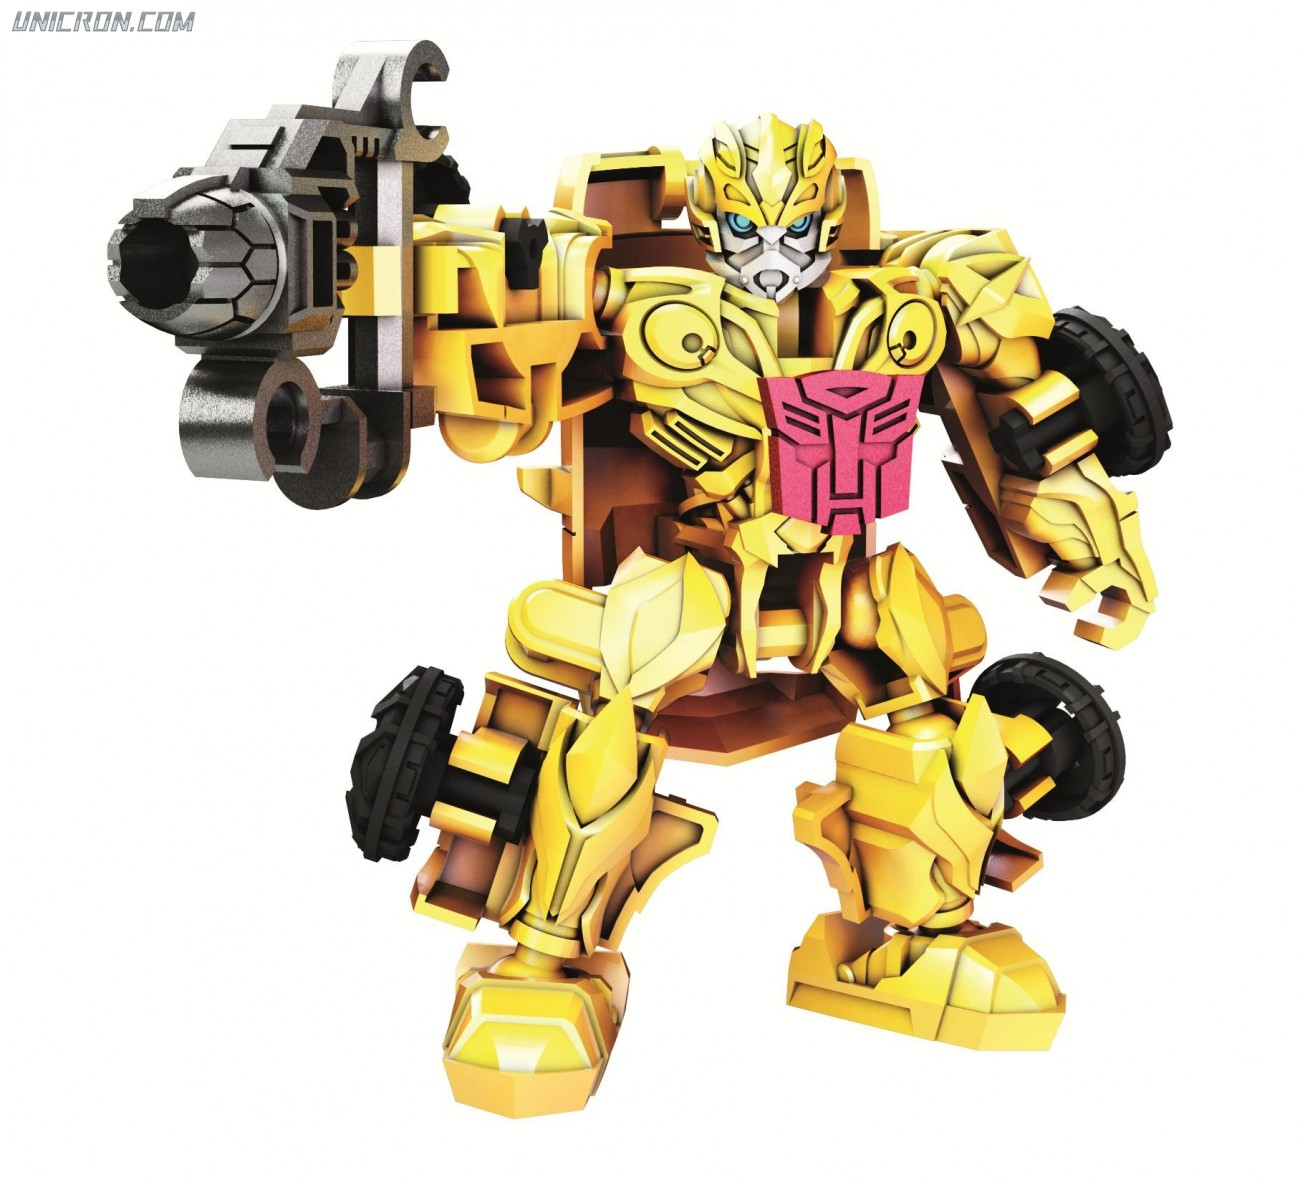 Transformers Construct-Bots Bumblebee - Construct-Bots, Dinobot Riders toy